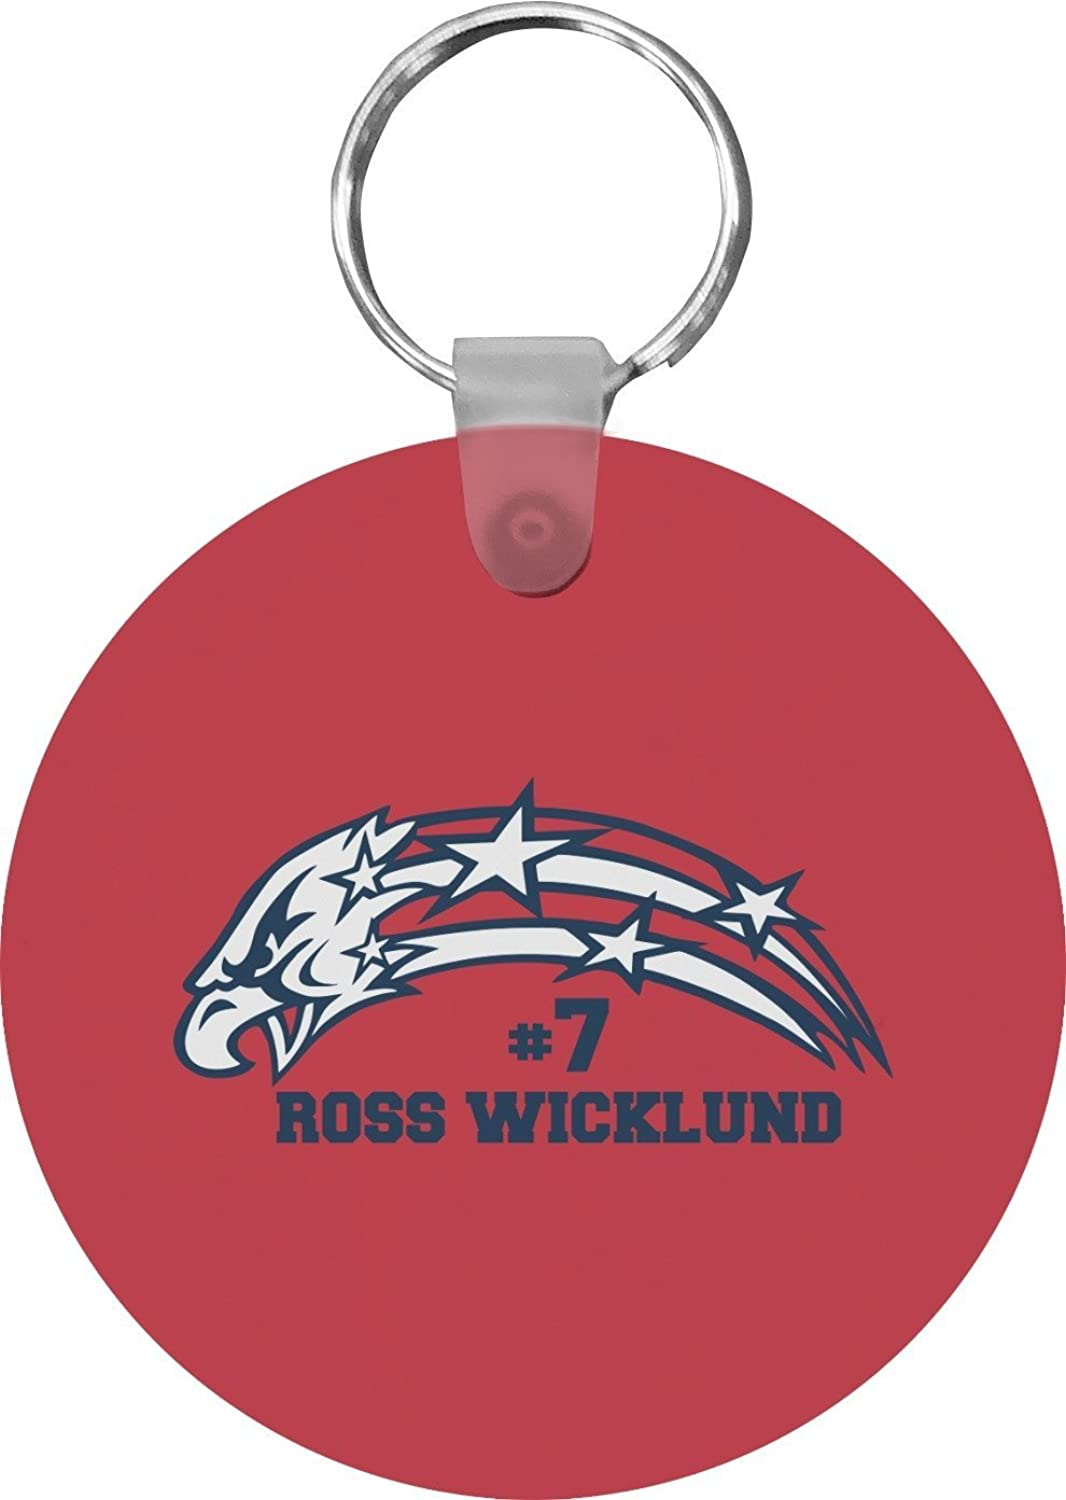 DHS Star & Stripes Round Keychain (Personalized)